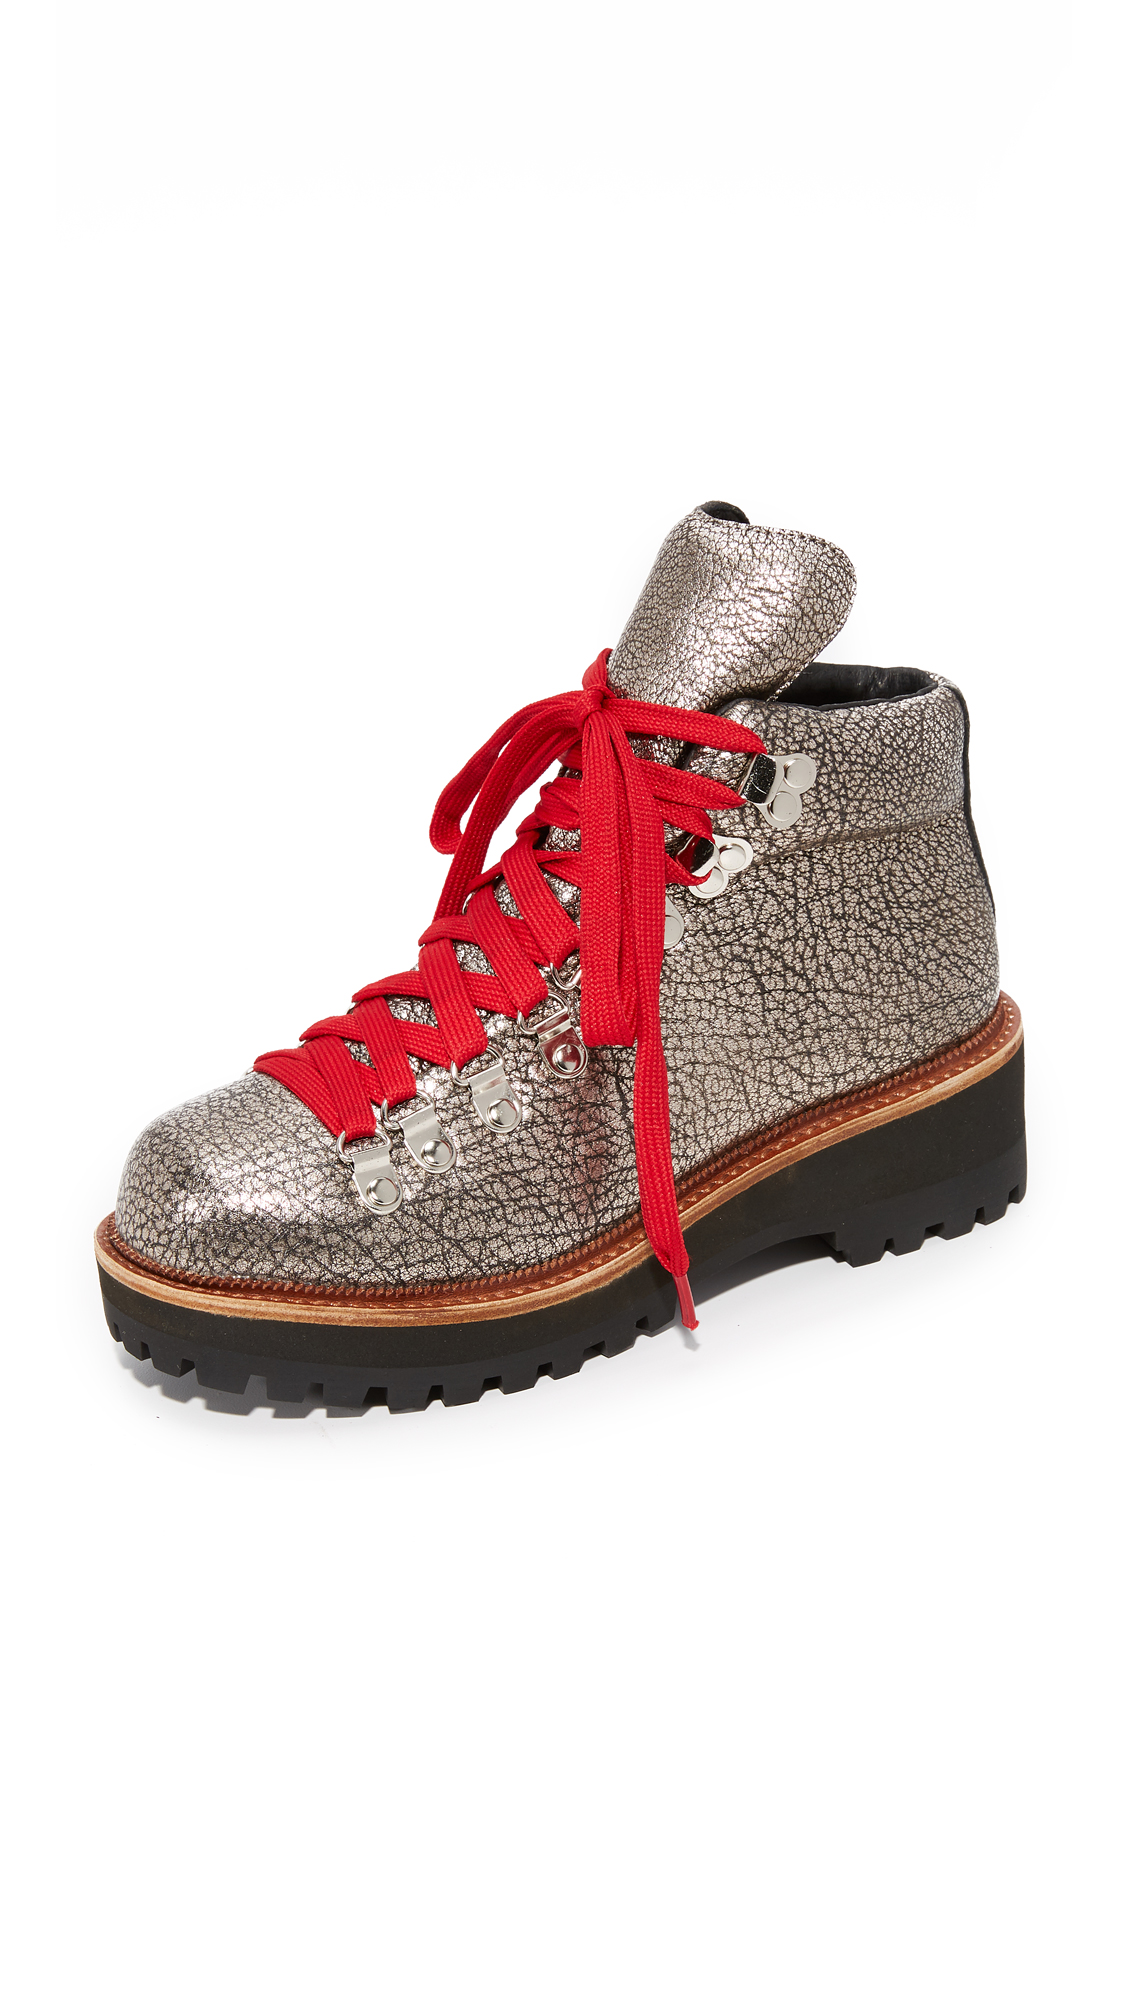 Jeffrey Campbell Explorer Boots - Pewter